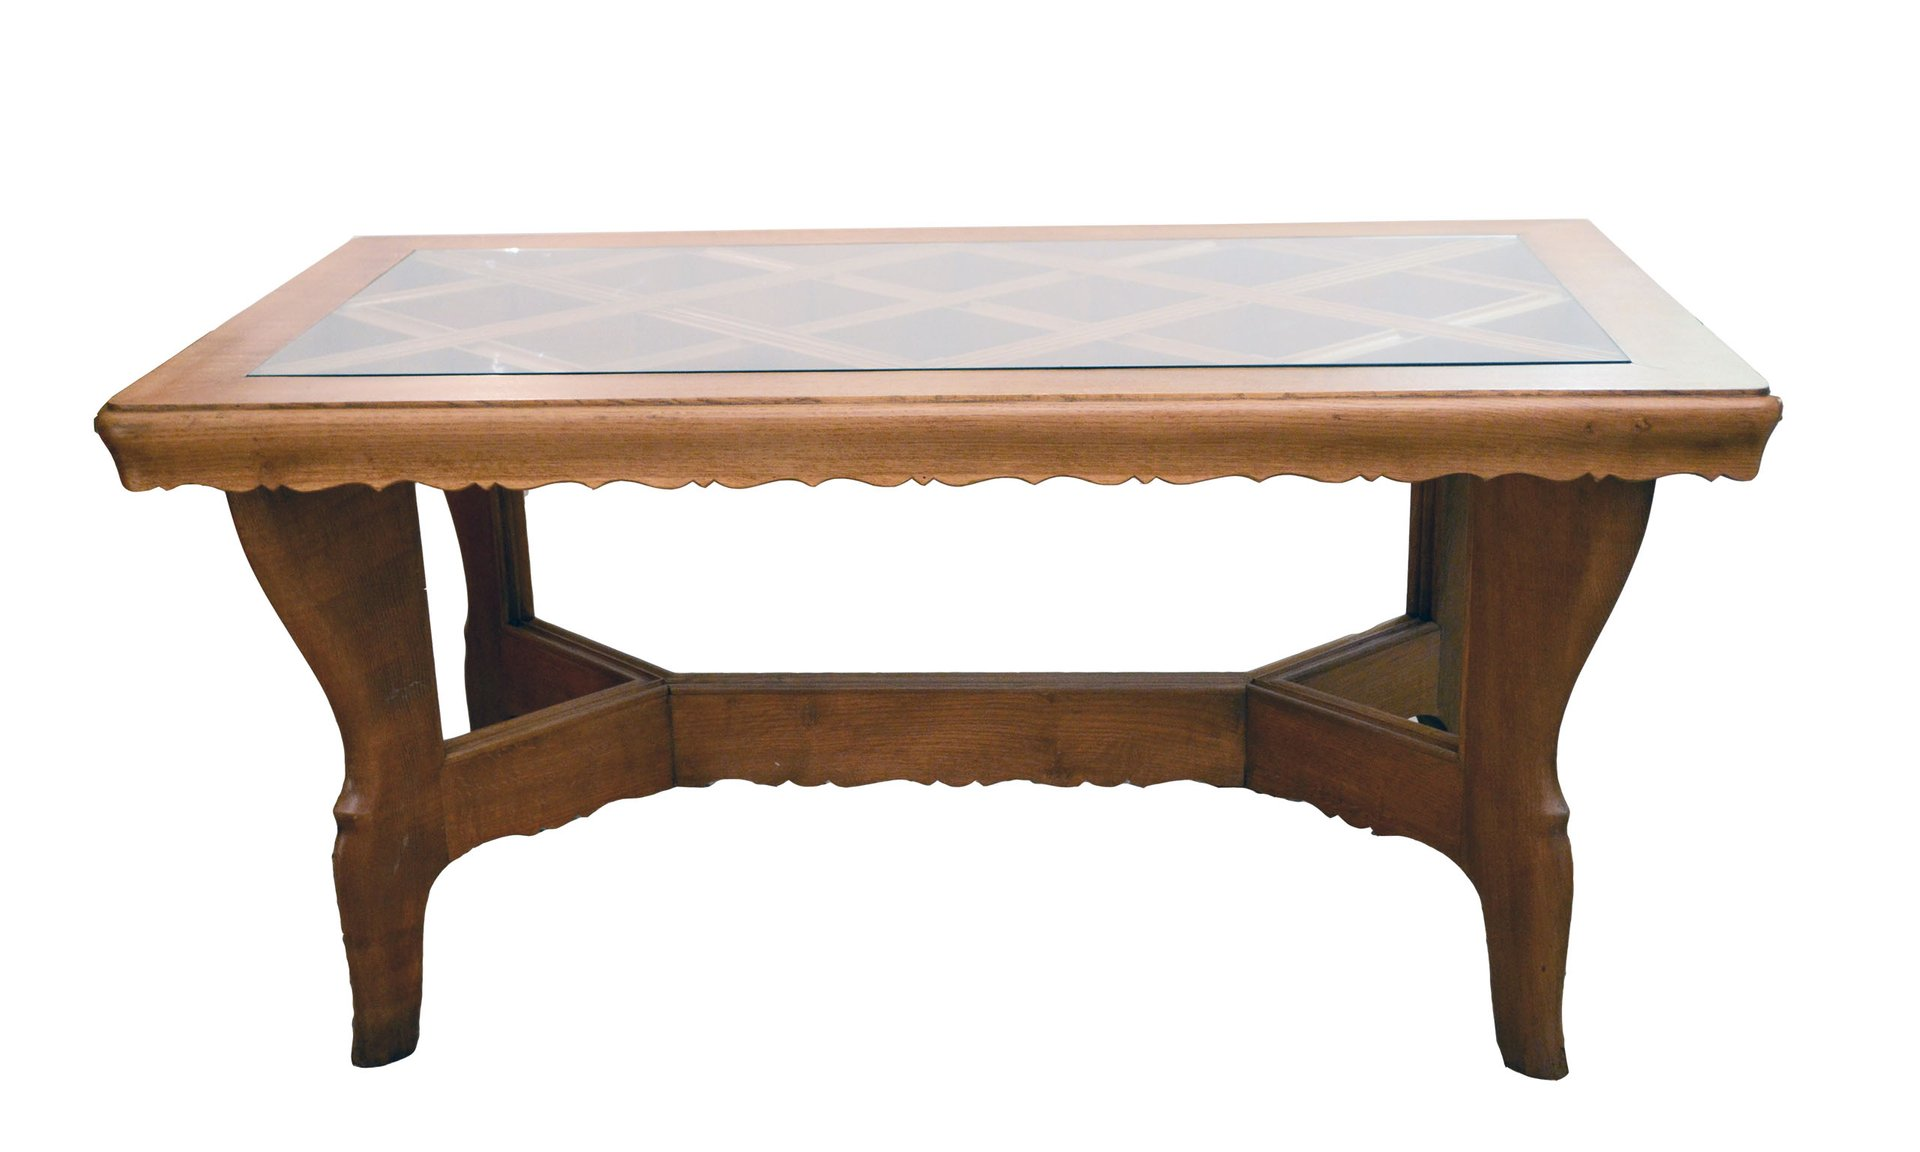 handmade solid oak table from atelier borsani 1940s for sale at pamono. Black Bedroom Furniture Sets. Home Design Ideas